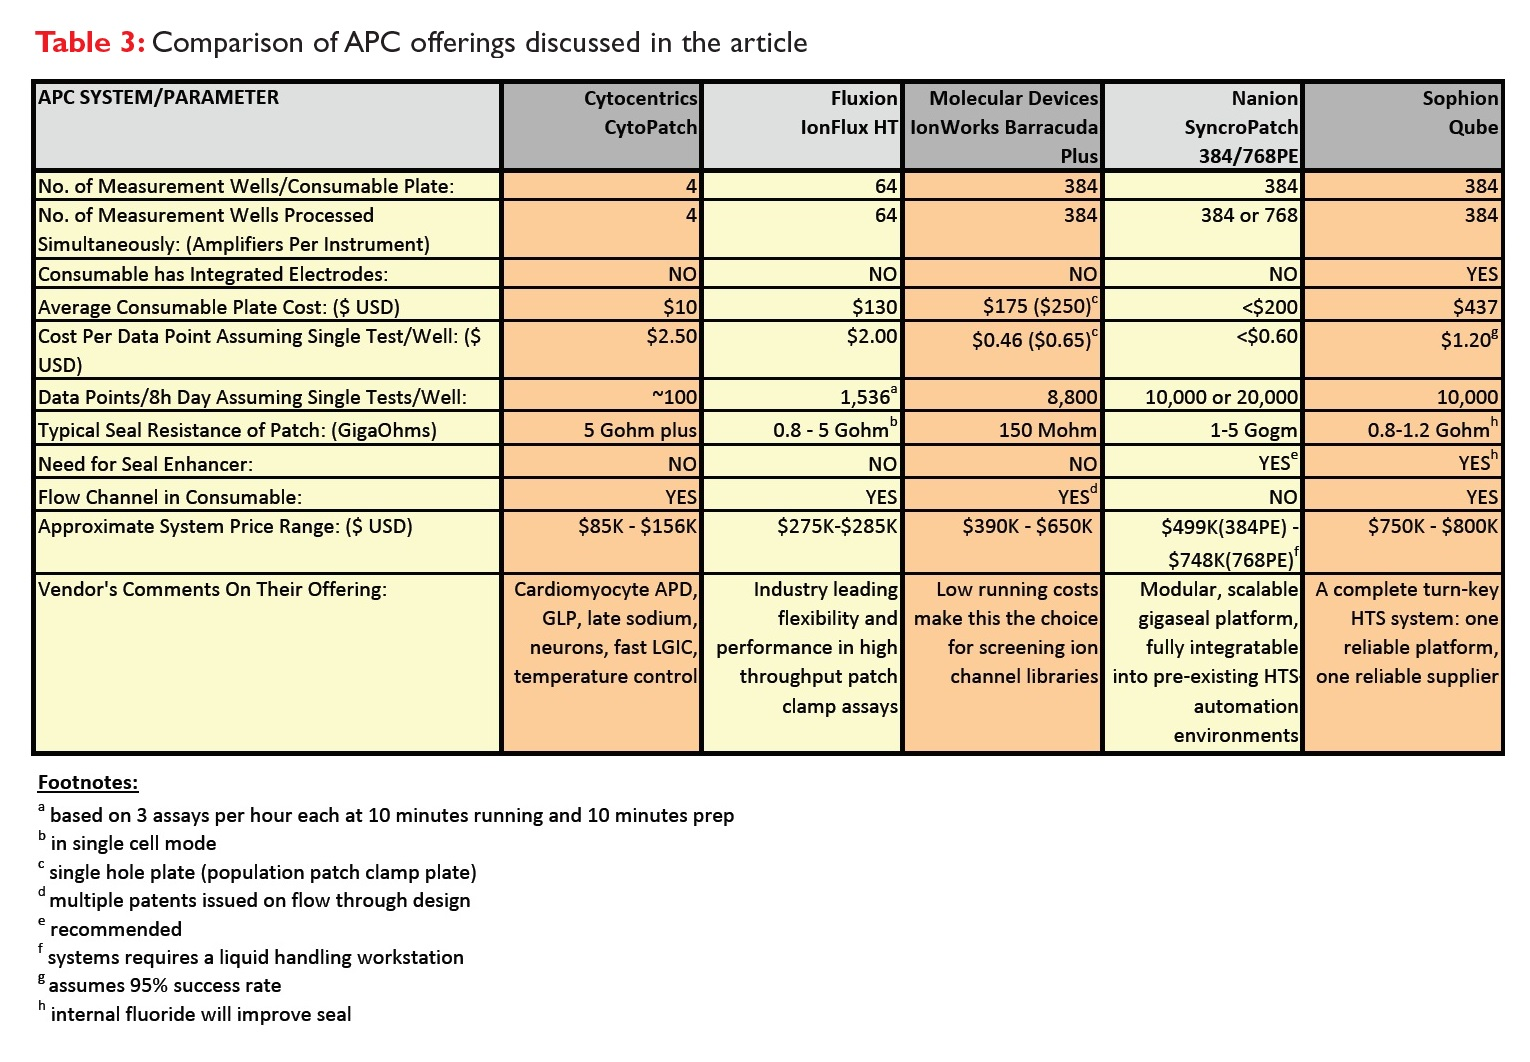 Table 3 Comparison of automated patch clamp offering discussed in this article